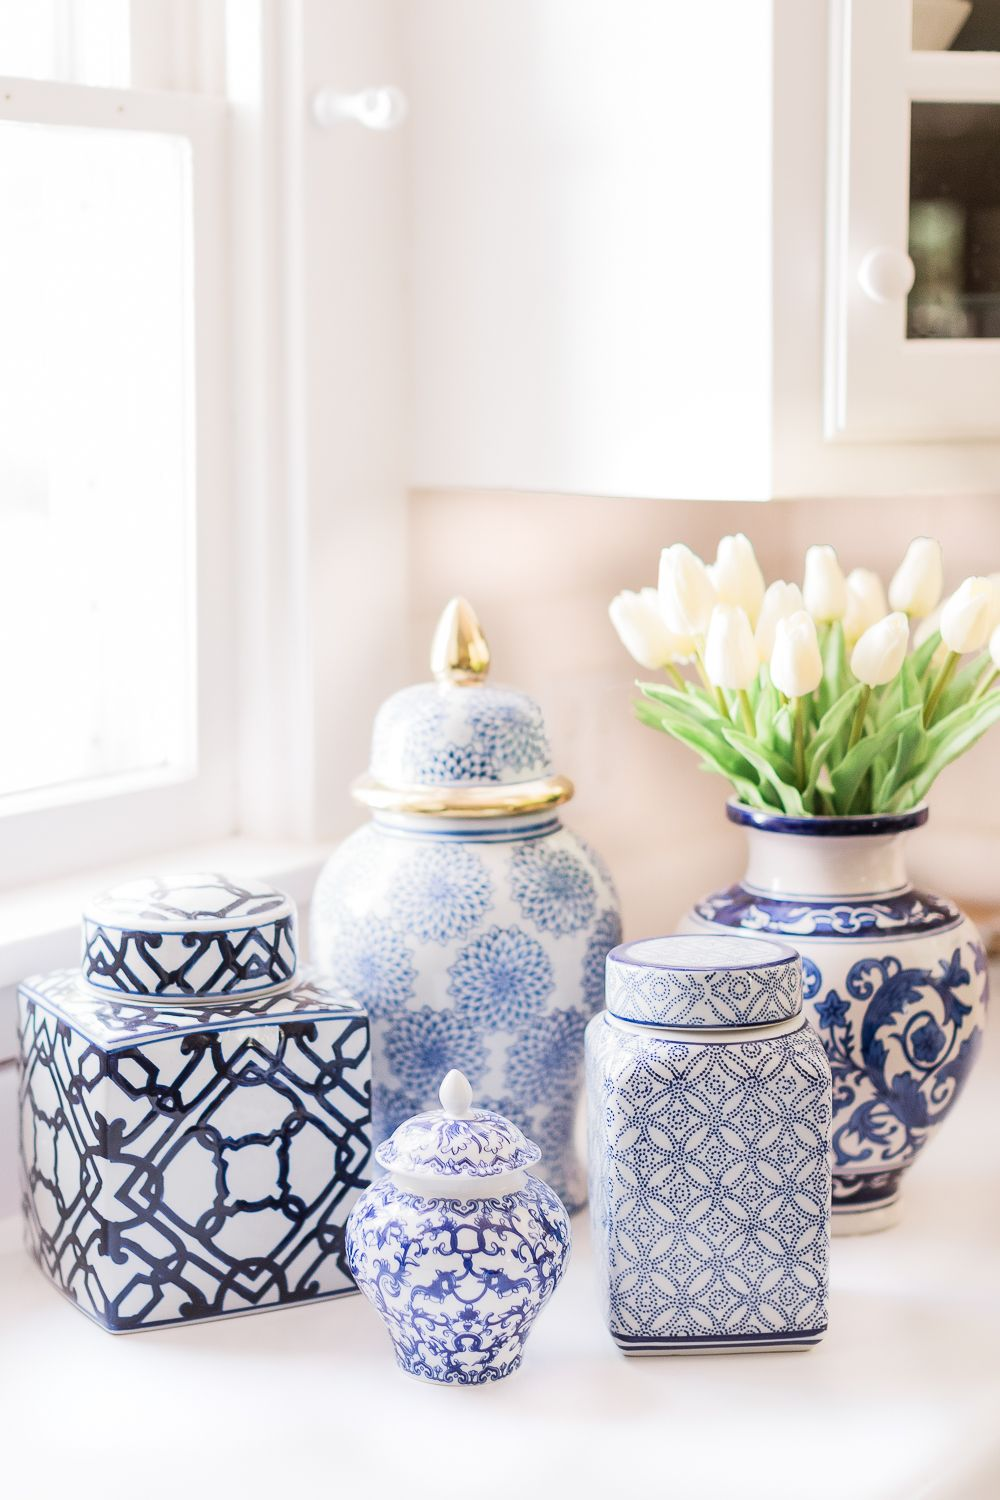 Popular southern lifestyle blogger Stephanie Ziajka rounds up 12 classic blue and white ginger jars on Amazon, all of which are under $100, in today's post!